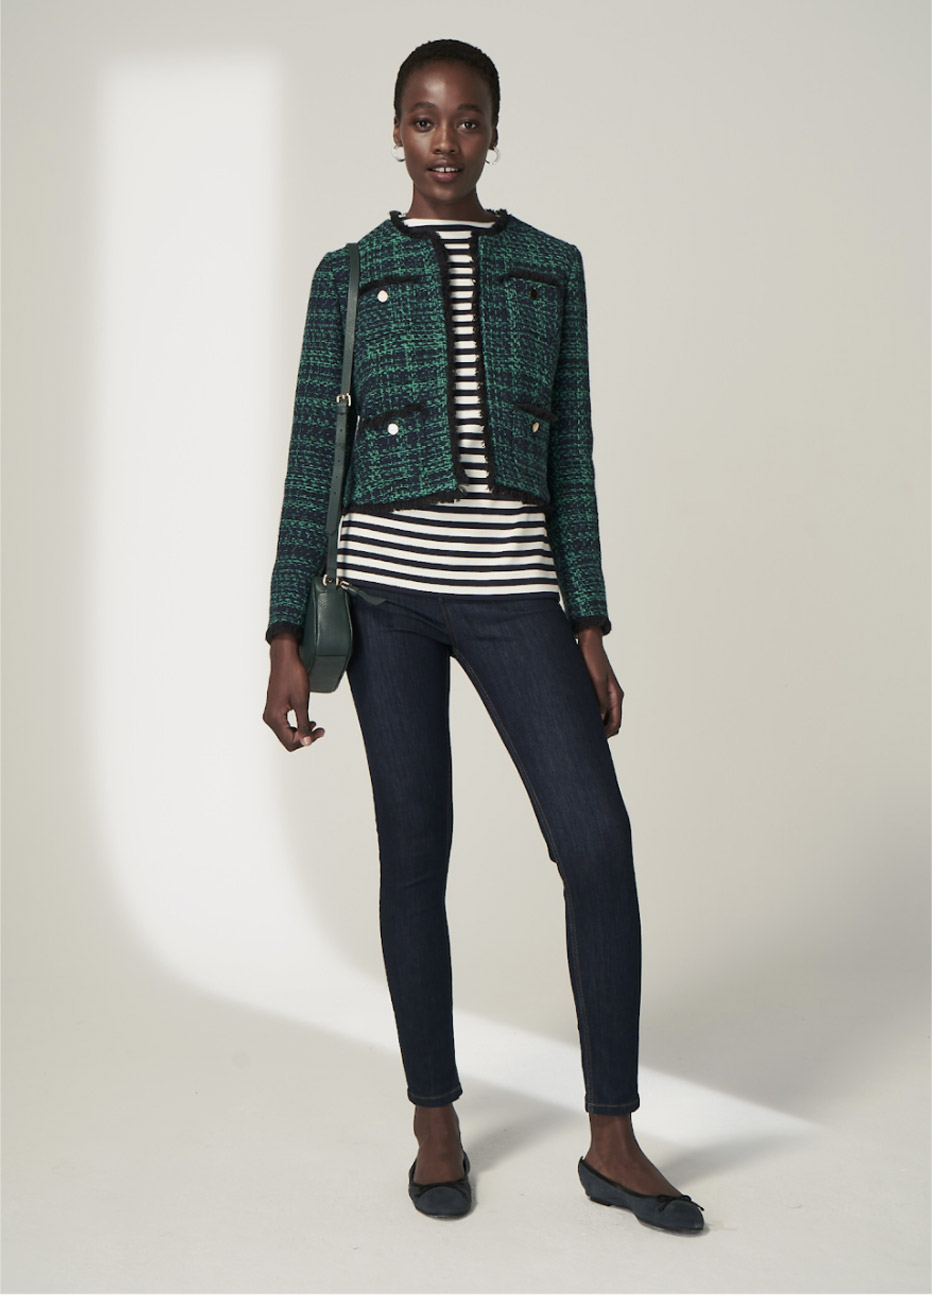 Hobbs model wearing a tweed jacket in green over a striped top, styled with black skinny jeans and black ballerina pumps.